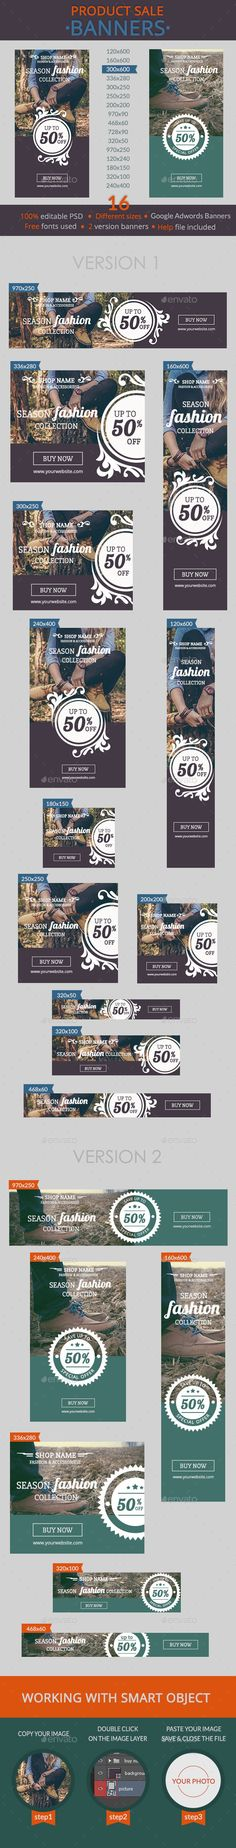 Product Sale Banners - Banners & Ads Web Template PSD. Download here: http://graphicriver.net/item/product-sale-banners/10908988?s_rank=1757&ref=yinkira